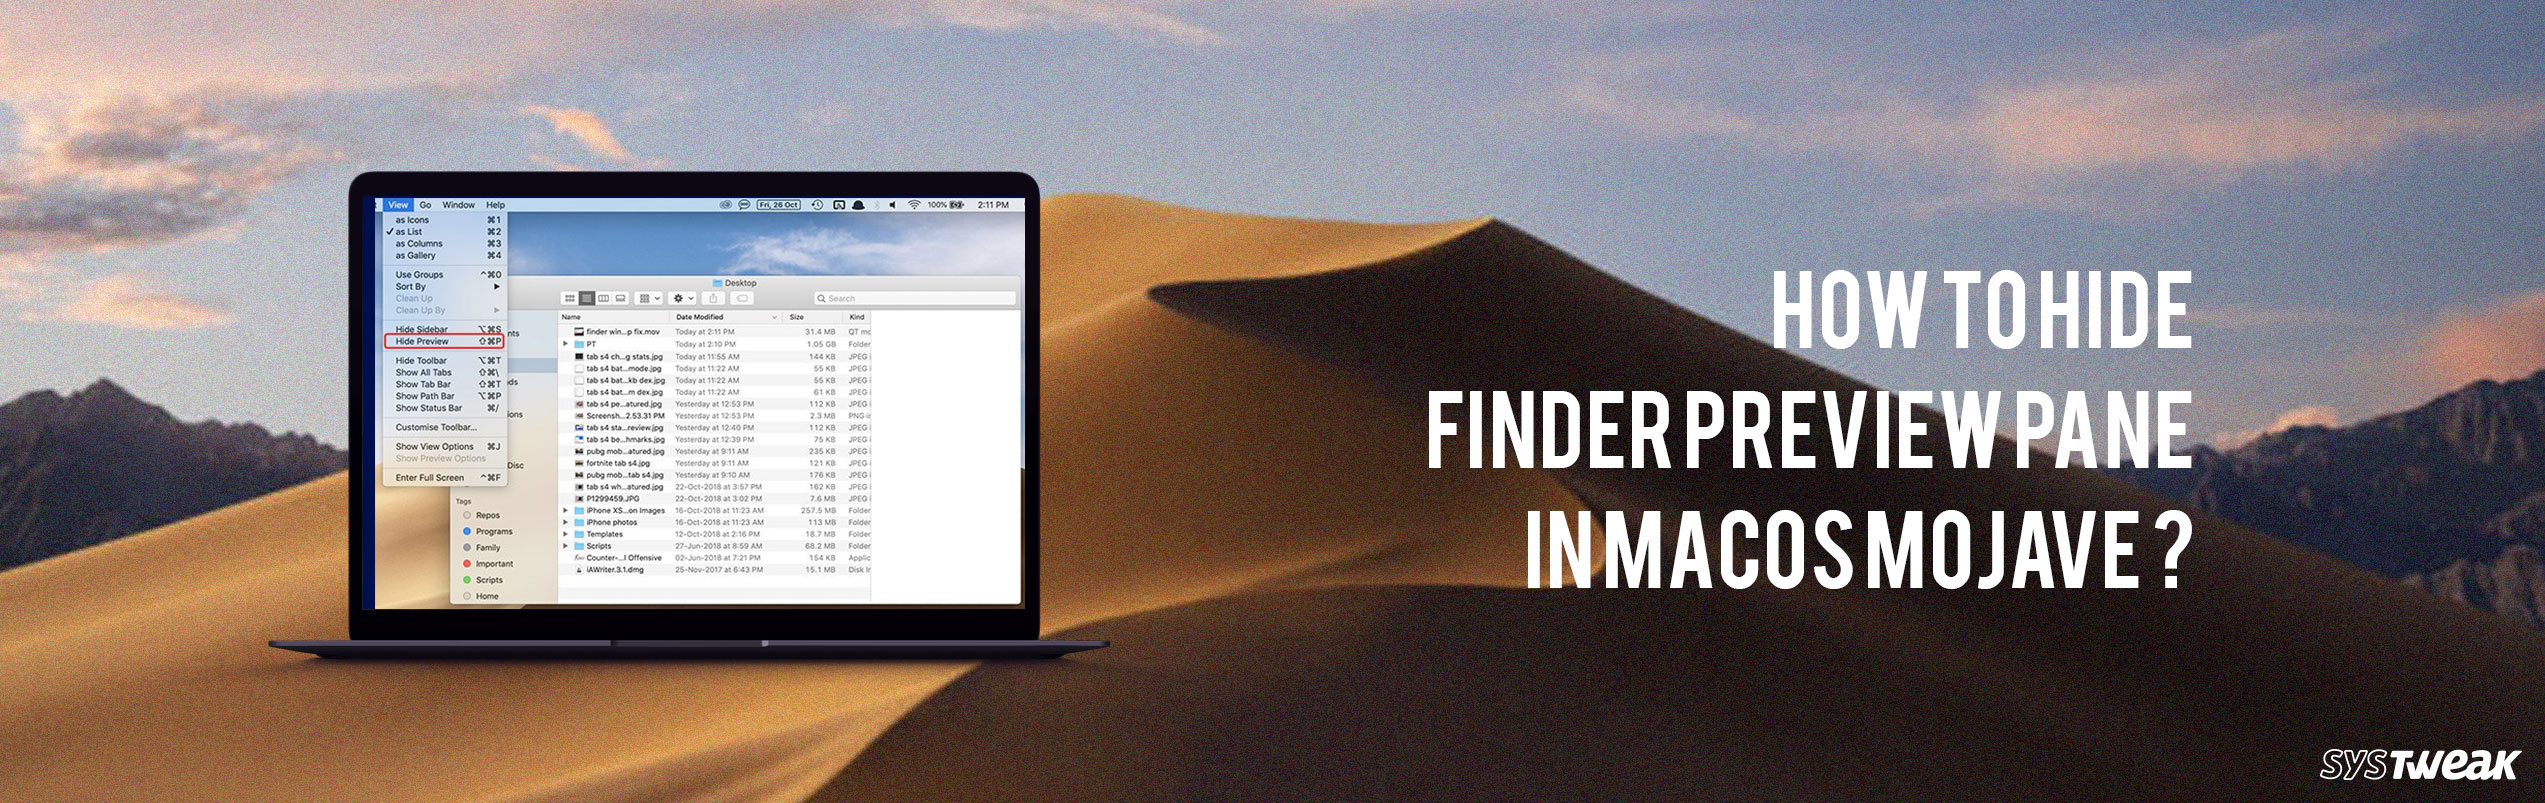 How to Hide Finder Preview Pane in macOS Mojave?